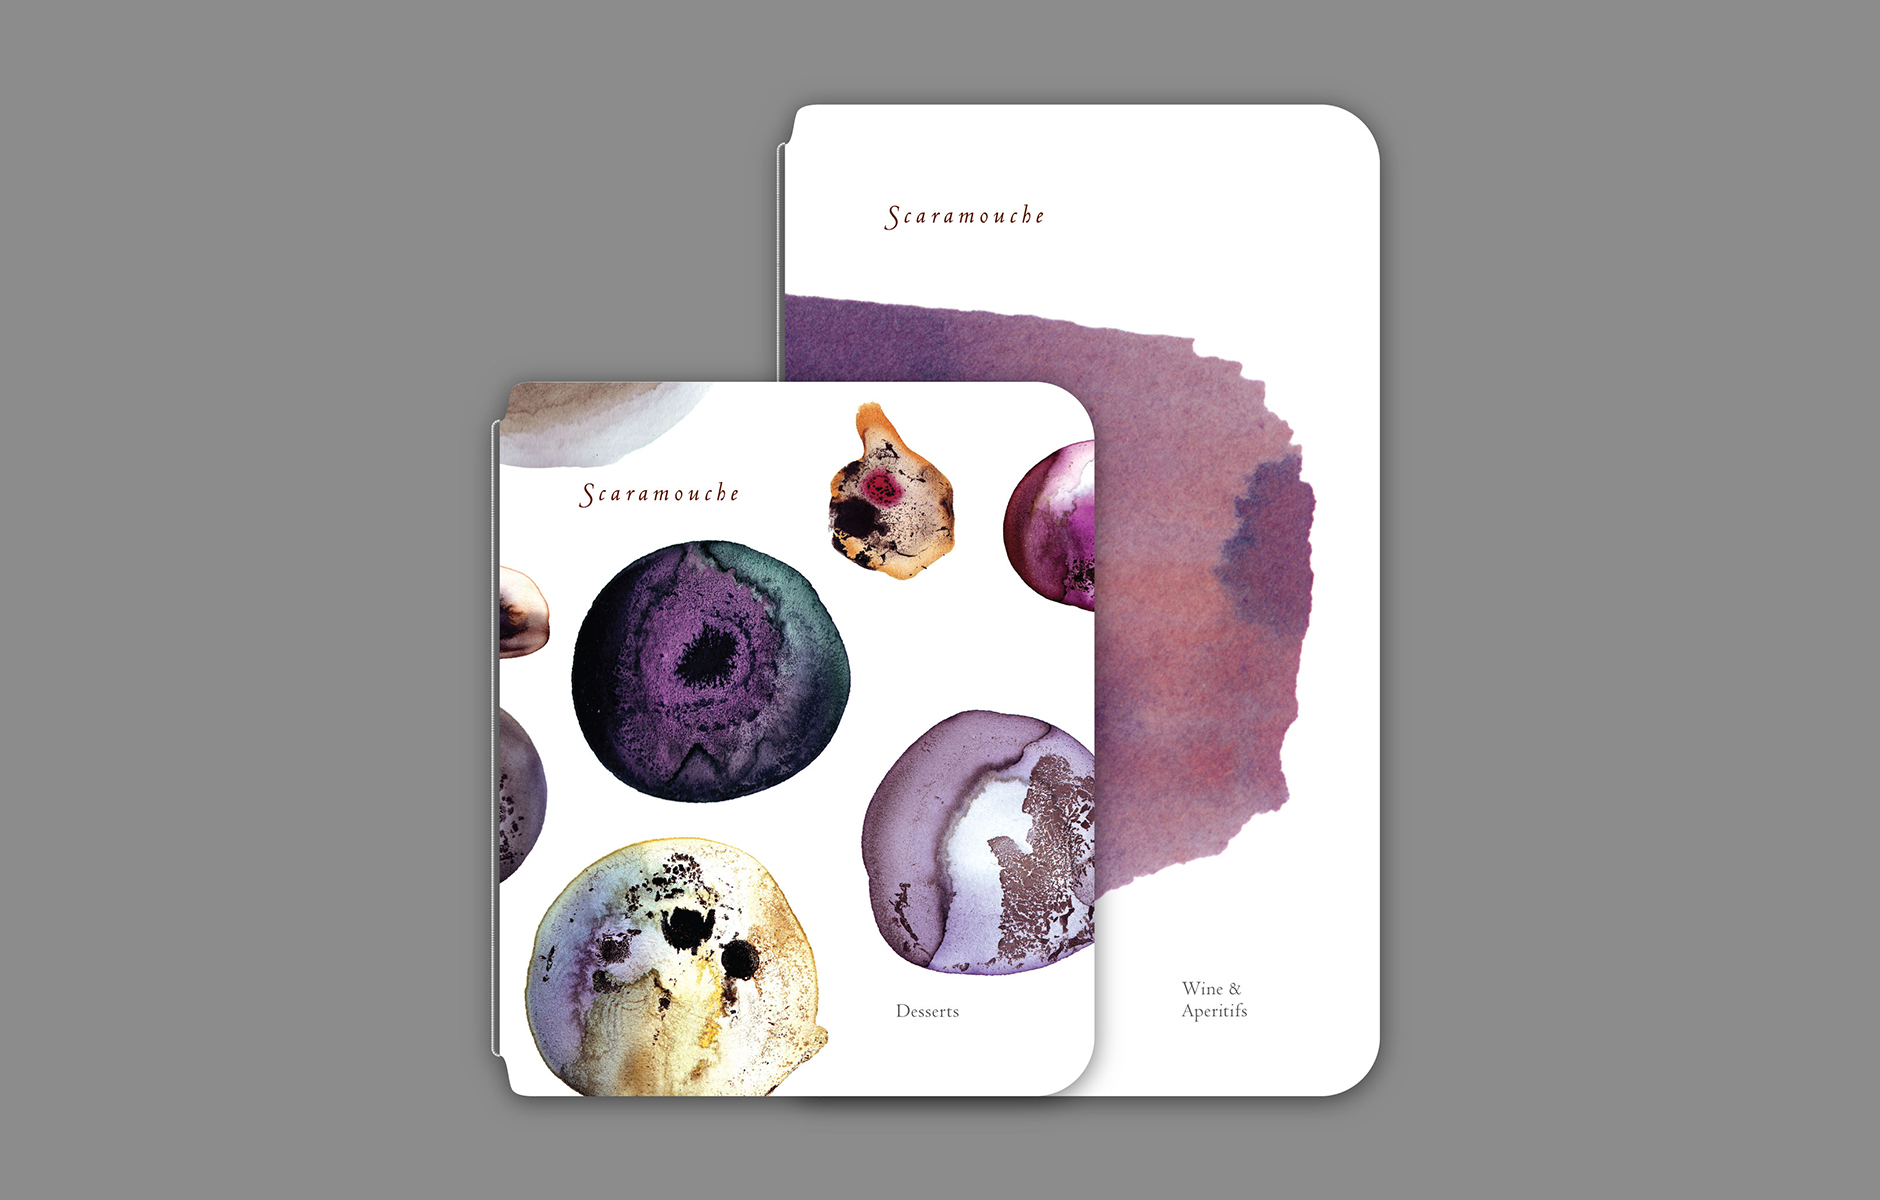 Scaramouche Menu cover - wine and desserts